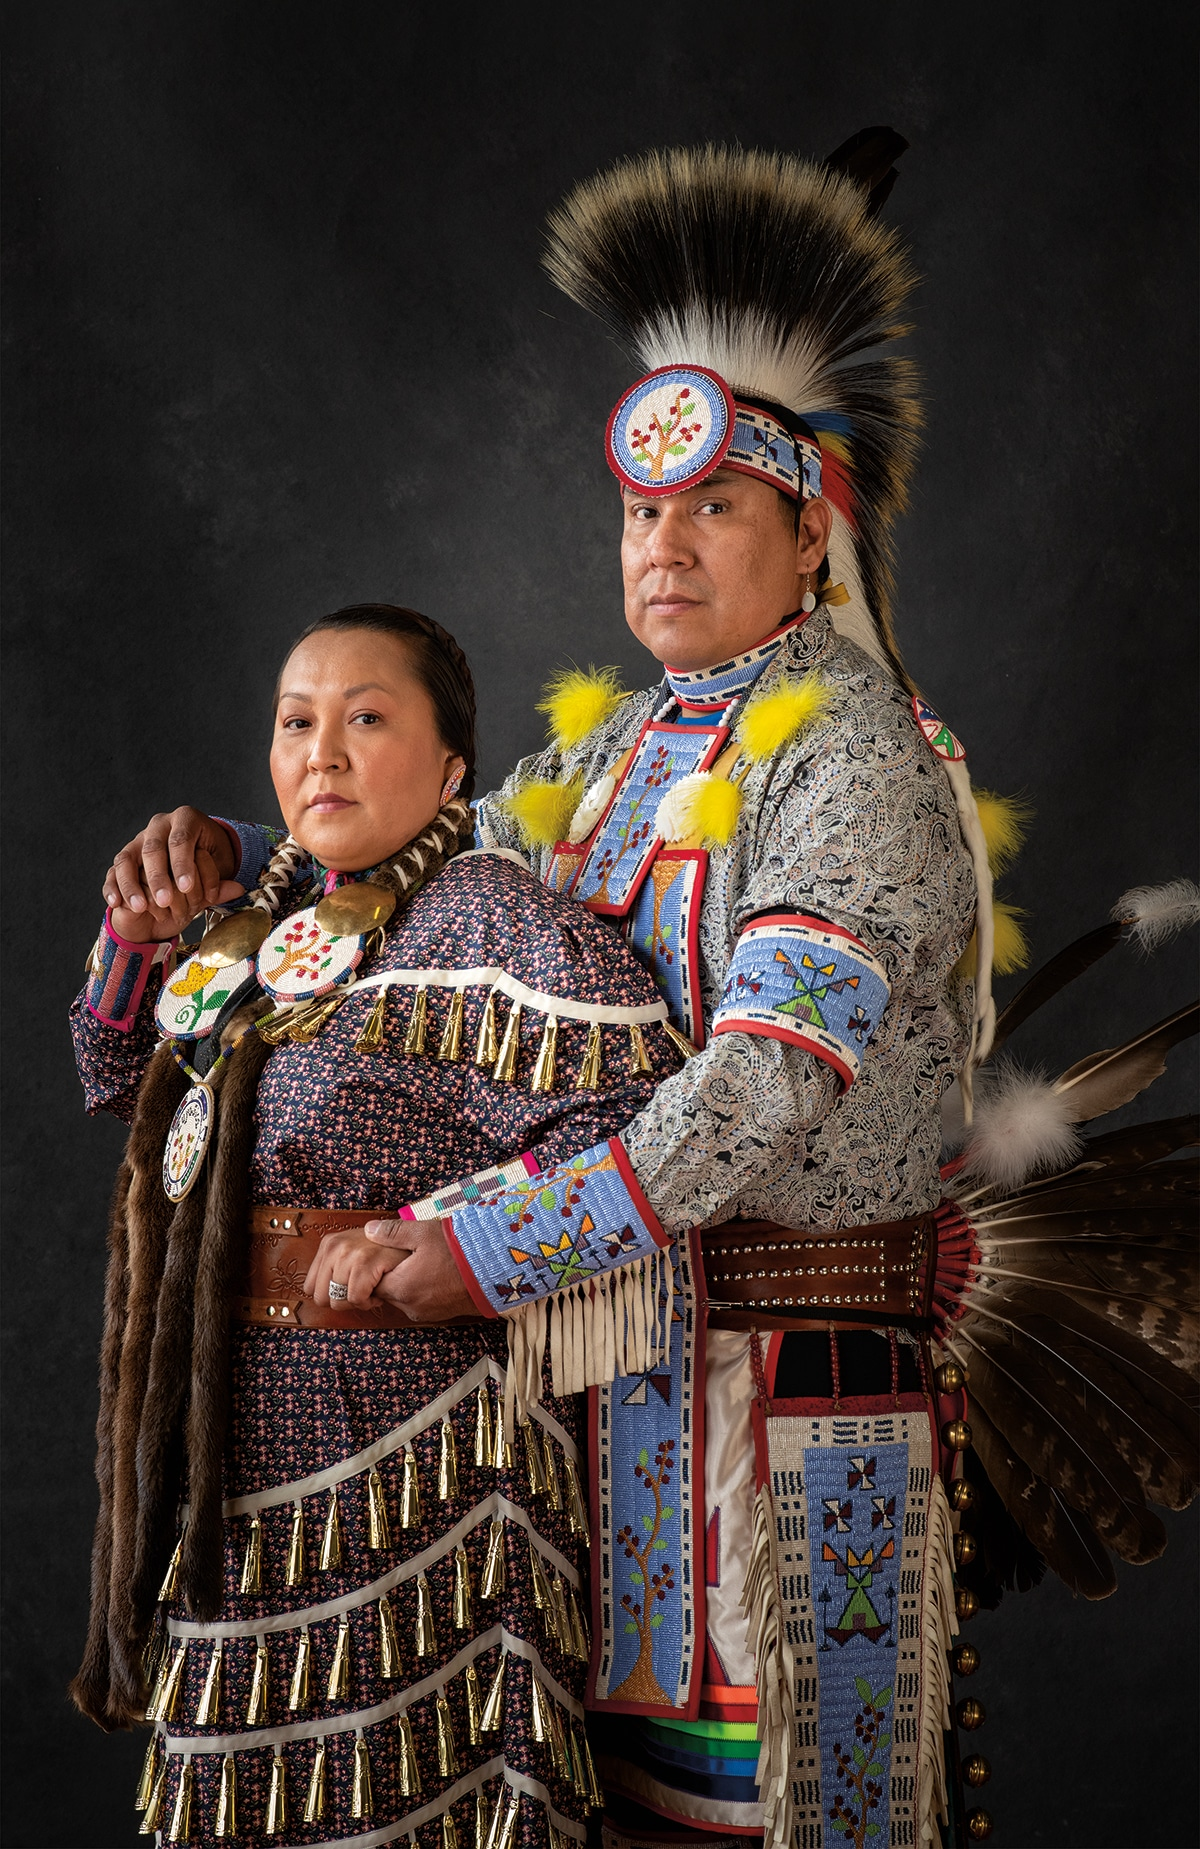 Portrait of Native American Couple in Traditional Dress